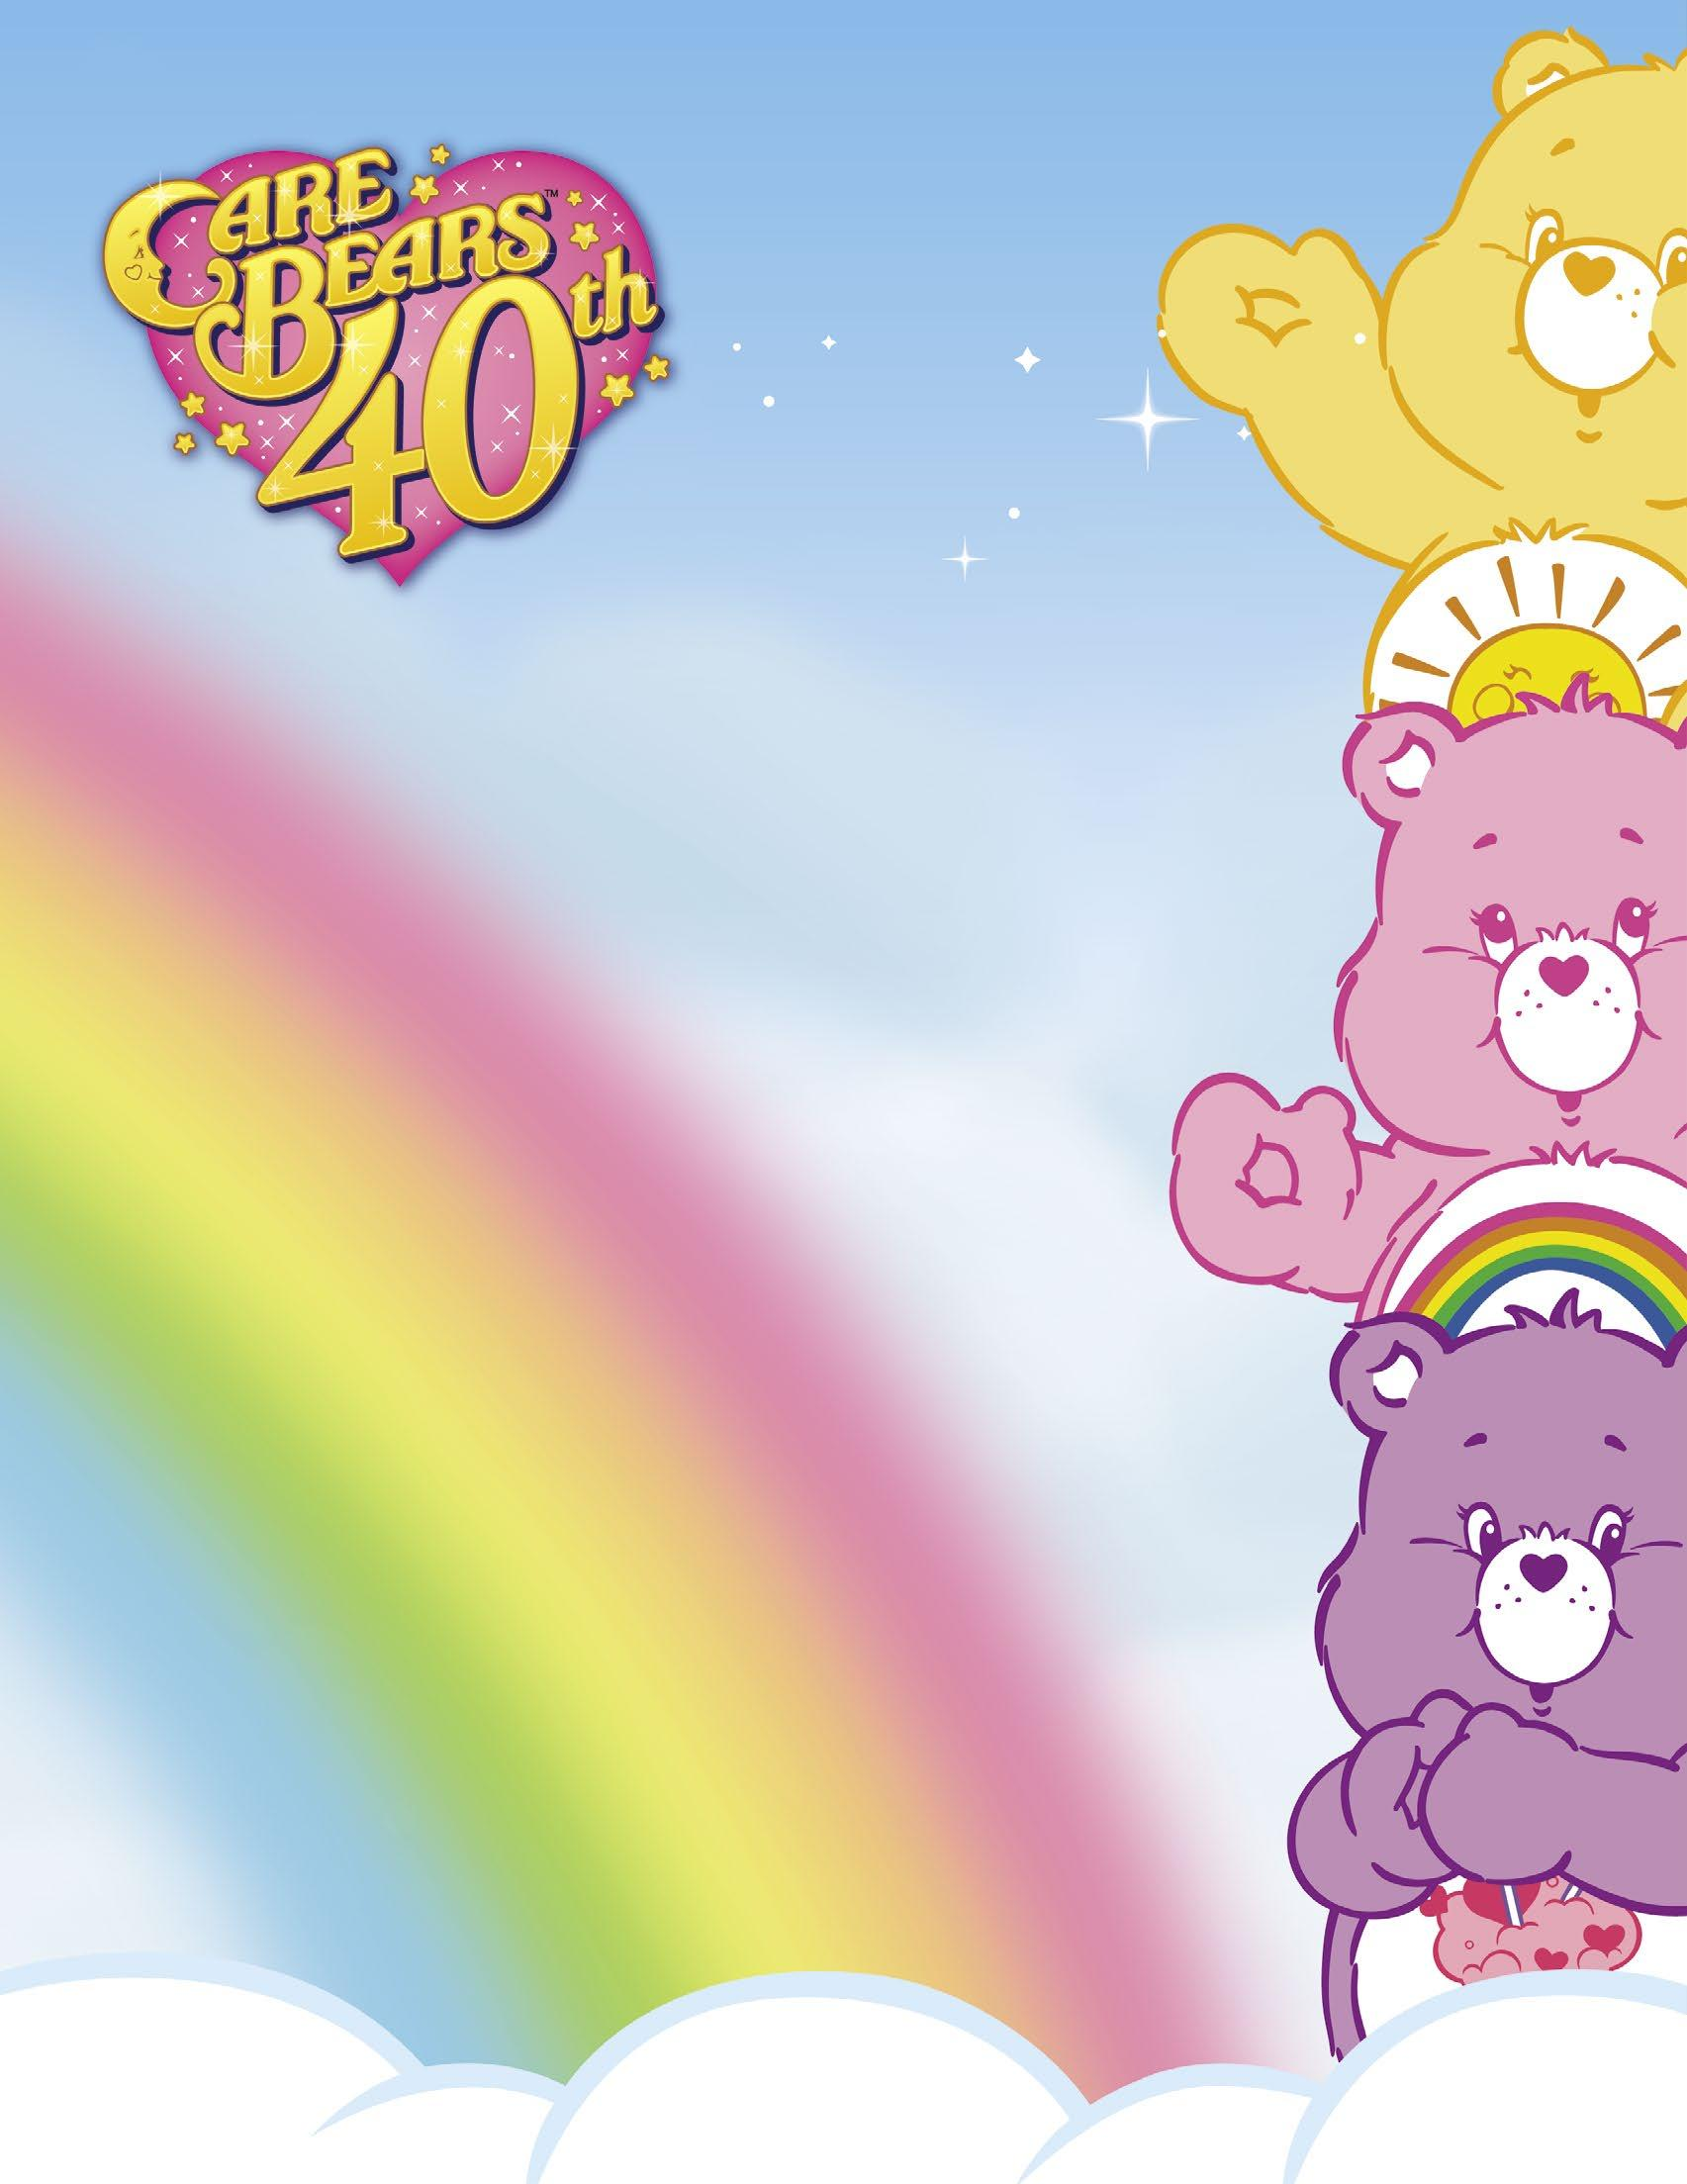 Page 50 of Care Bears lead up to 40 years